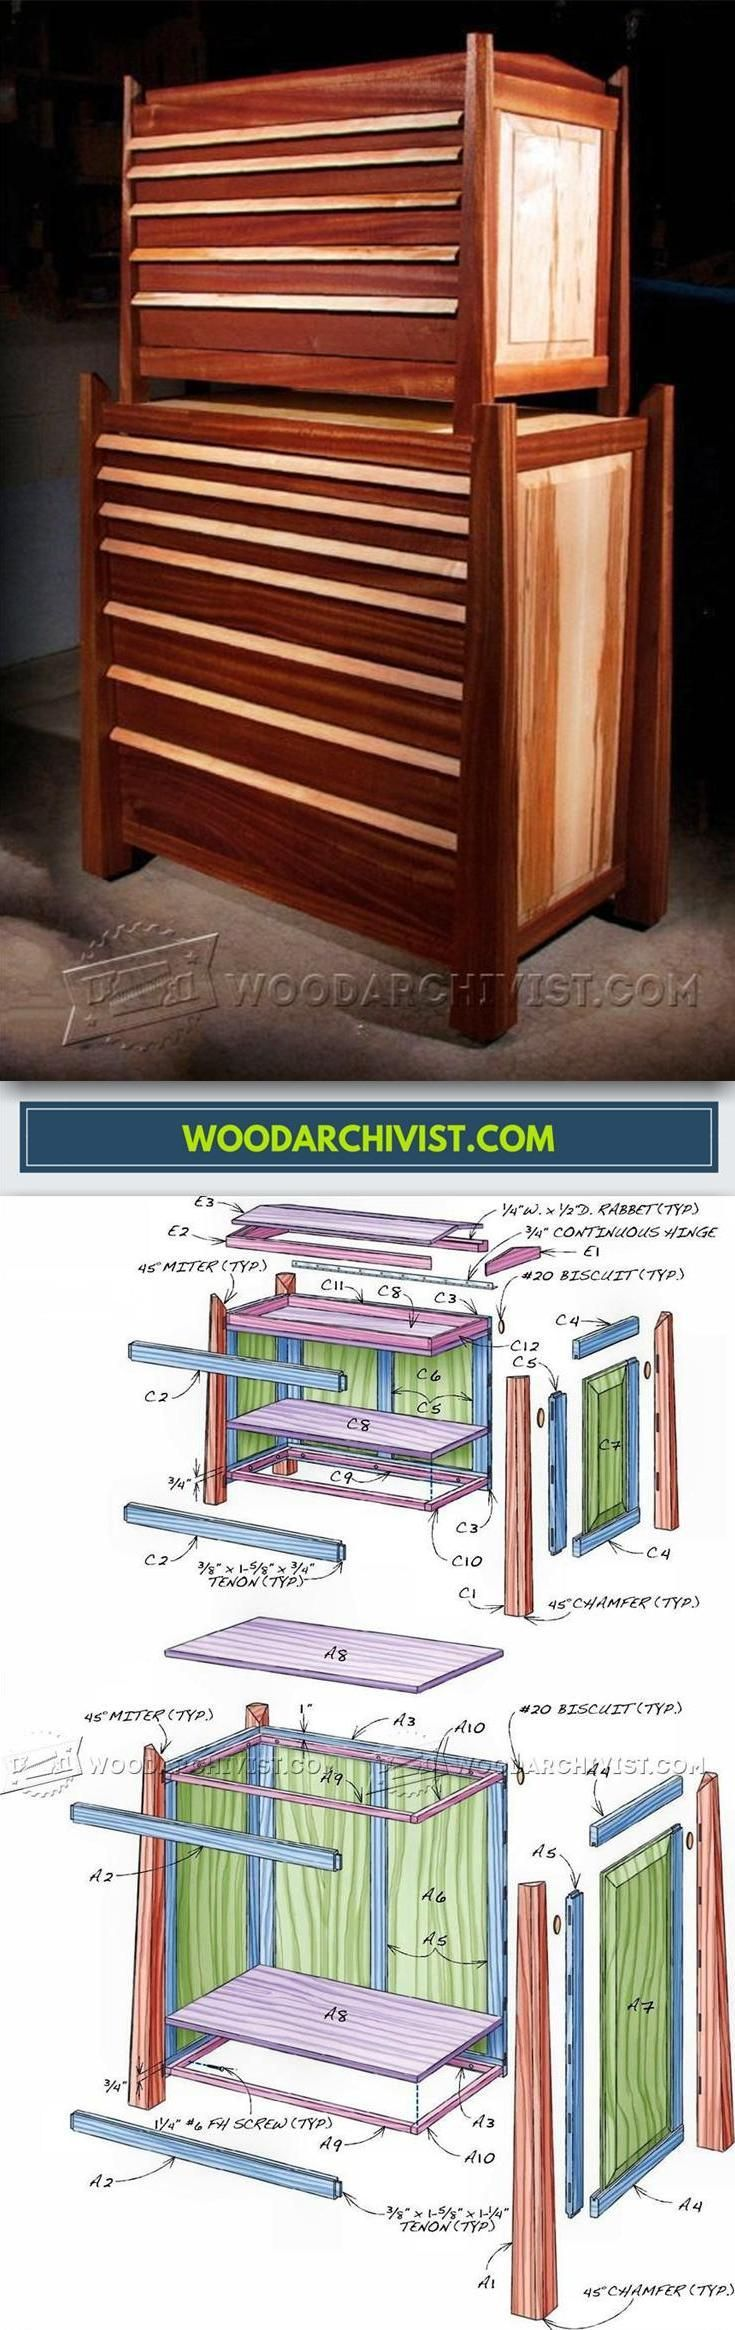 Tool Storage Cabinet Plans - Workshop Solutions Plans, Tips and Tricks | WoodArchivist.com